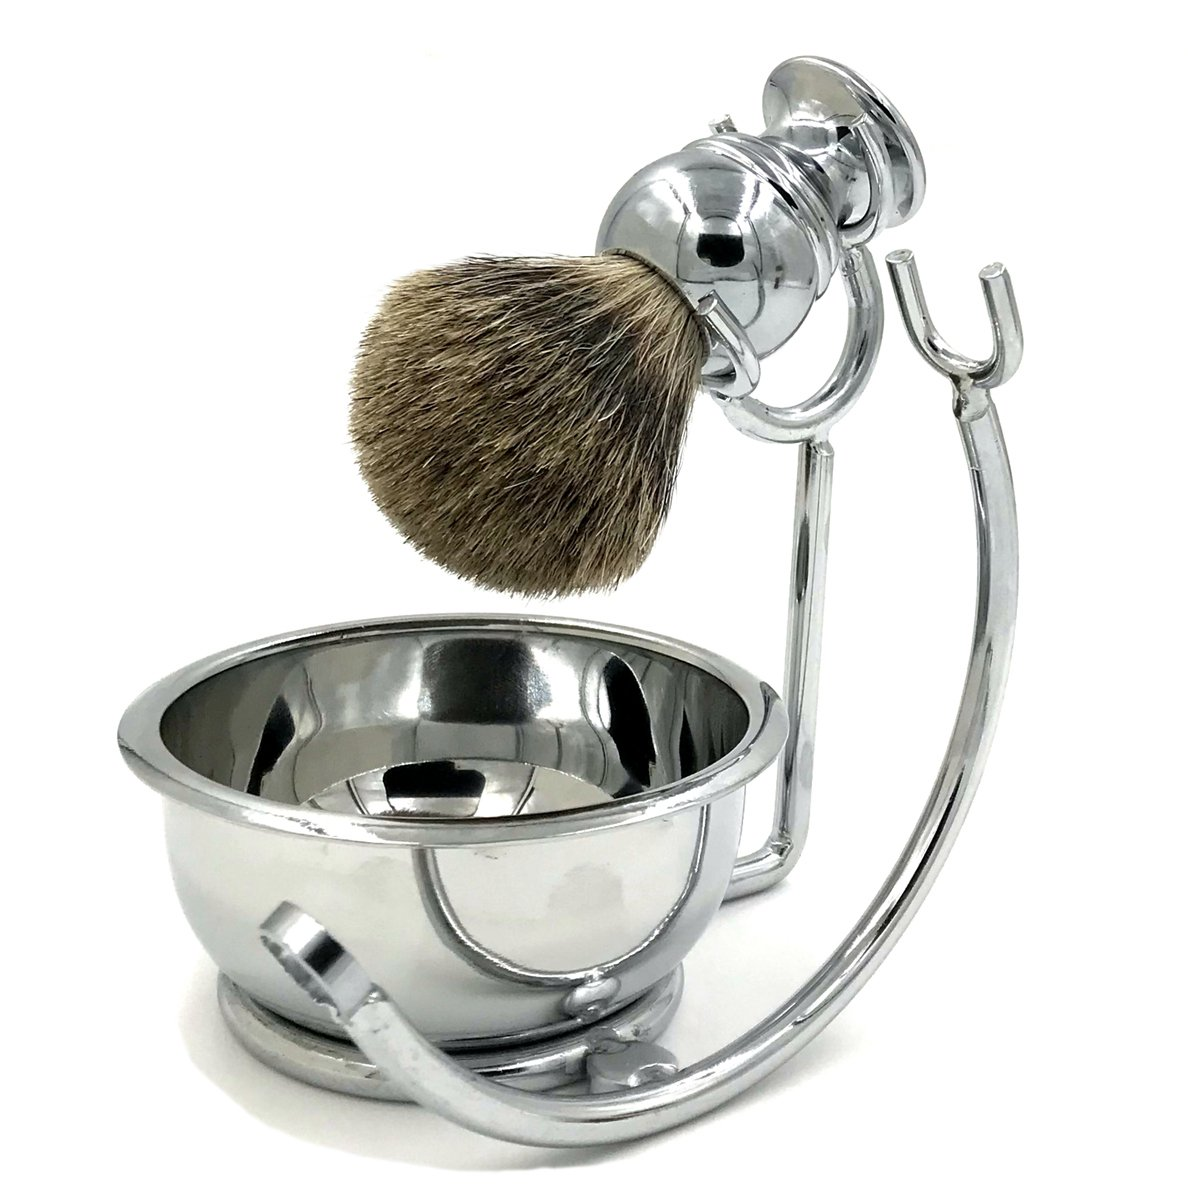 Professional Mens Shaving Stand Razor Brush Stand + Genuine Badger Hair Shaving brush + Perfect Stainless Steel Heavy Shaving Soap Bowl for Double Edge Safety Razor or Multi Blade Razor Shanwo